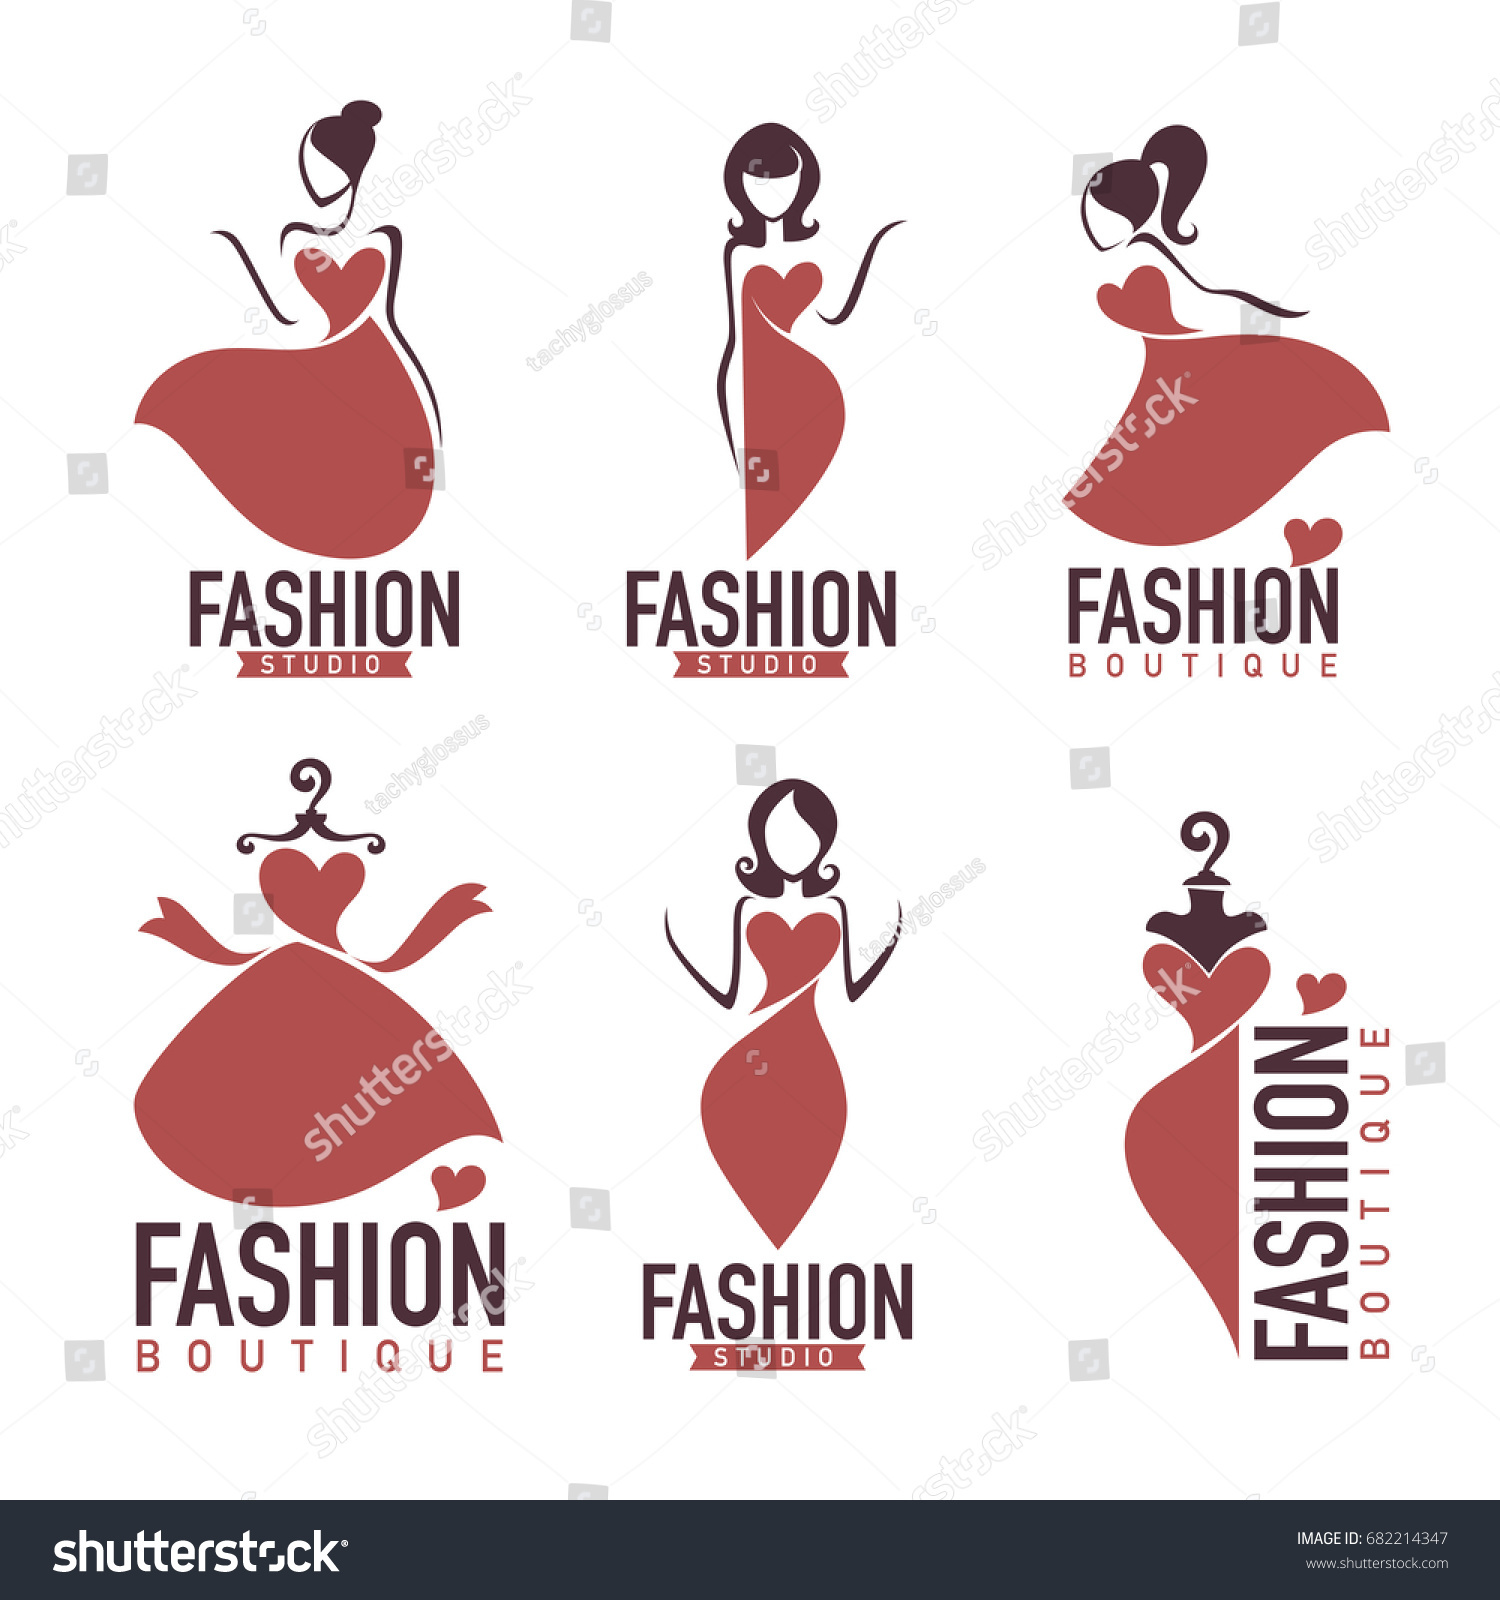 Fashion beauty salon studio boutique logo stock vector for 560 salon grand junction